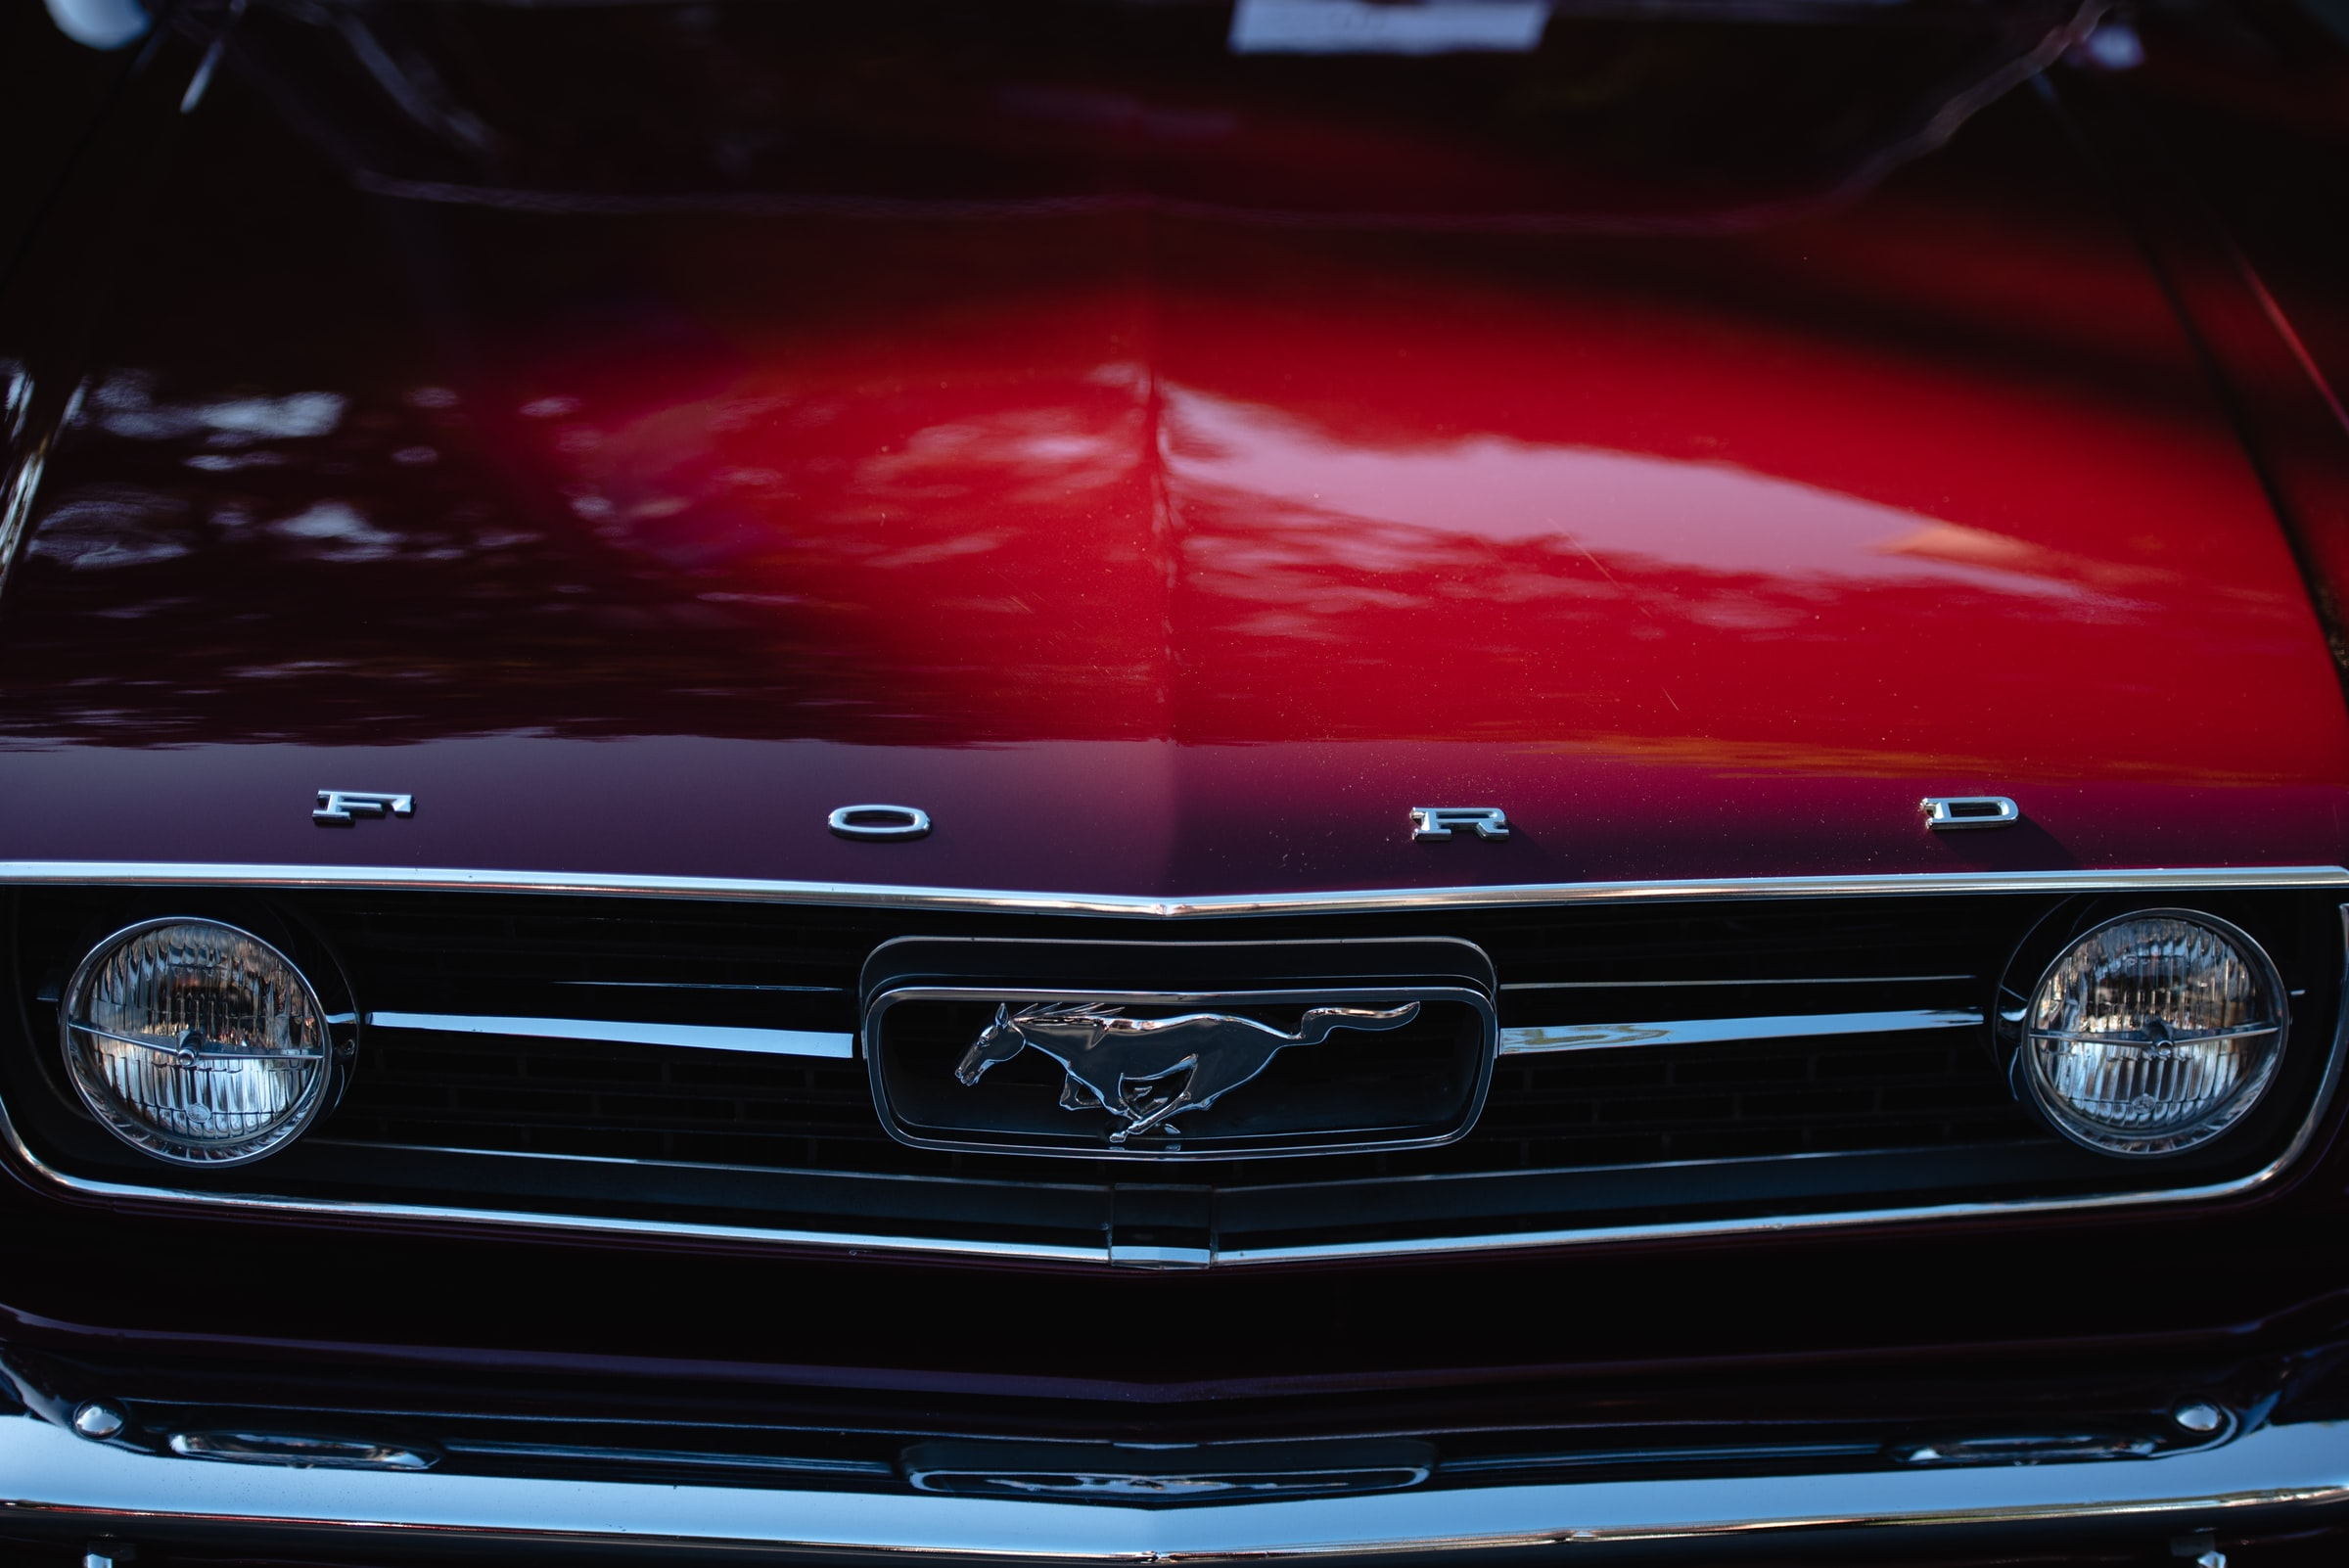 Ford Mustang 2022 Is Stealthy For The Wealthy In New Appearances